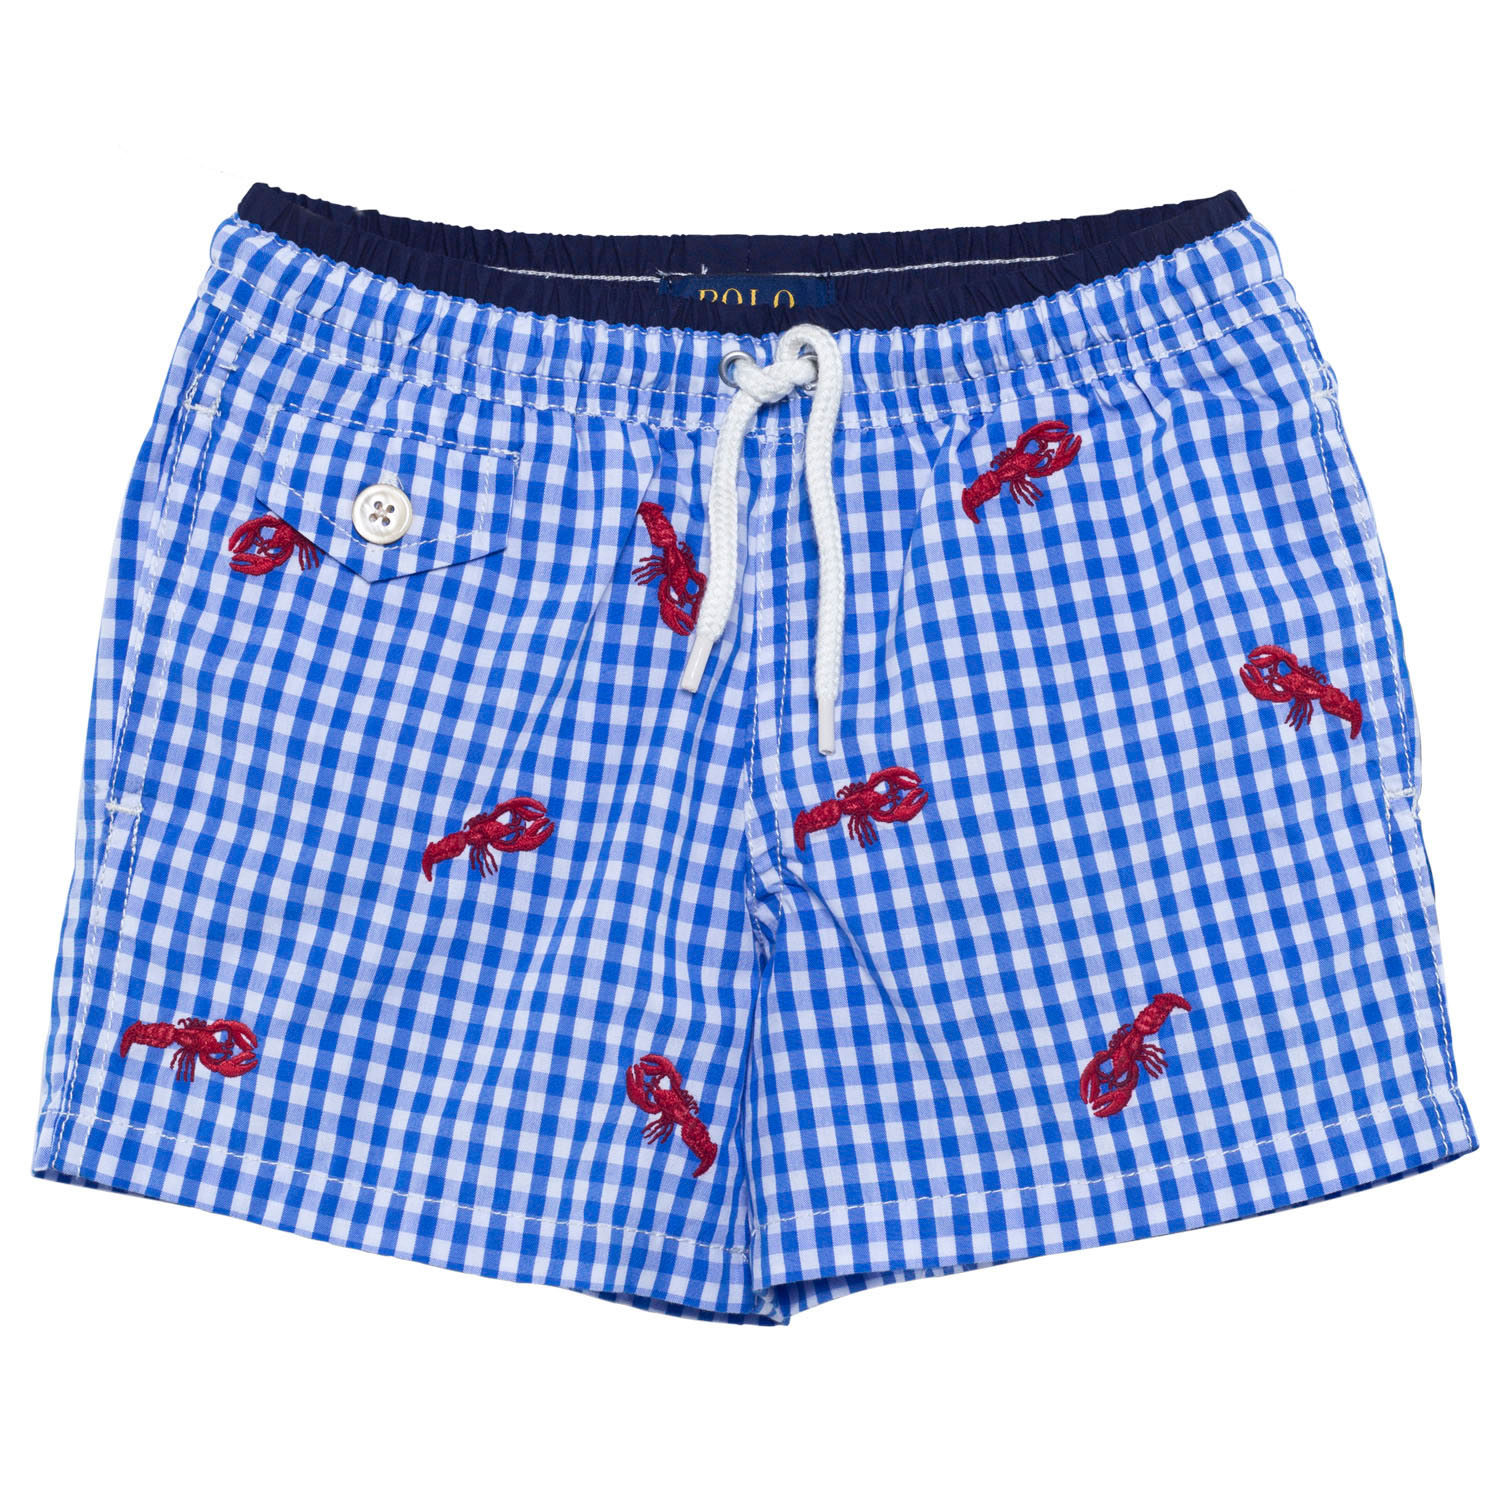 2678767a6b04 Ralph Lauren Blue Gingham and Lobster Embroidered Swim Shorts ...